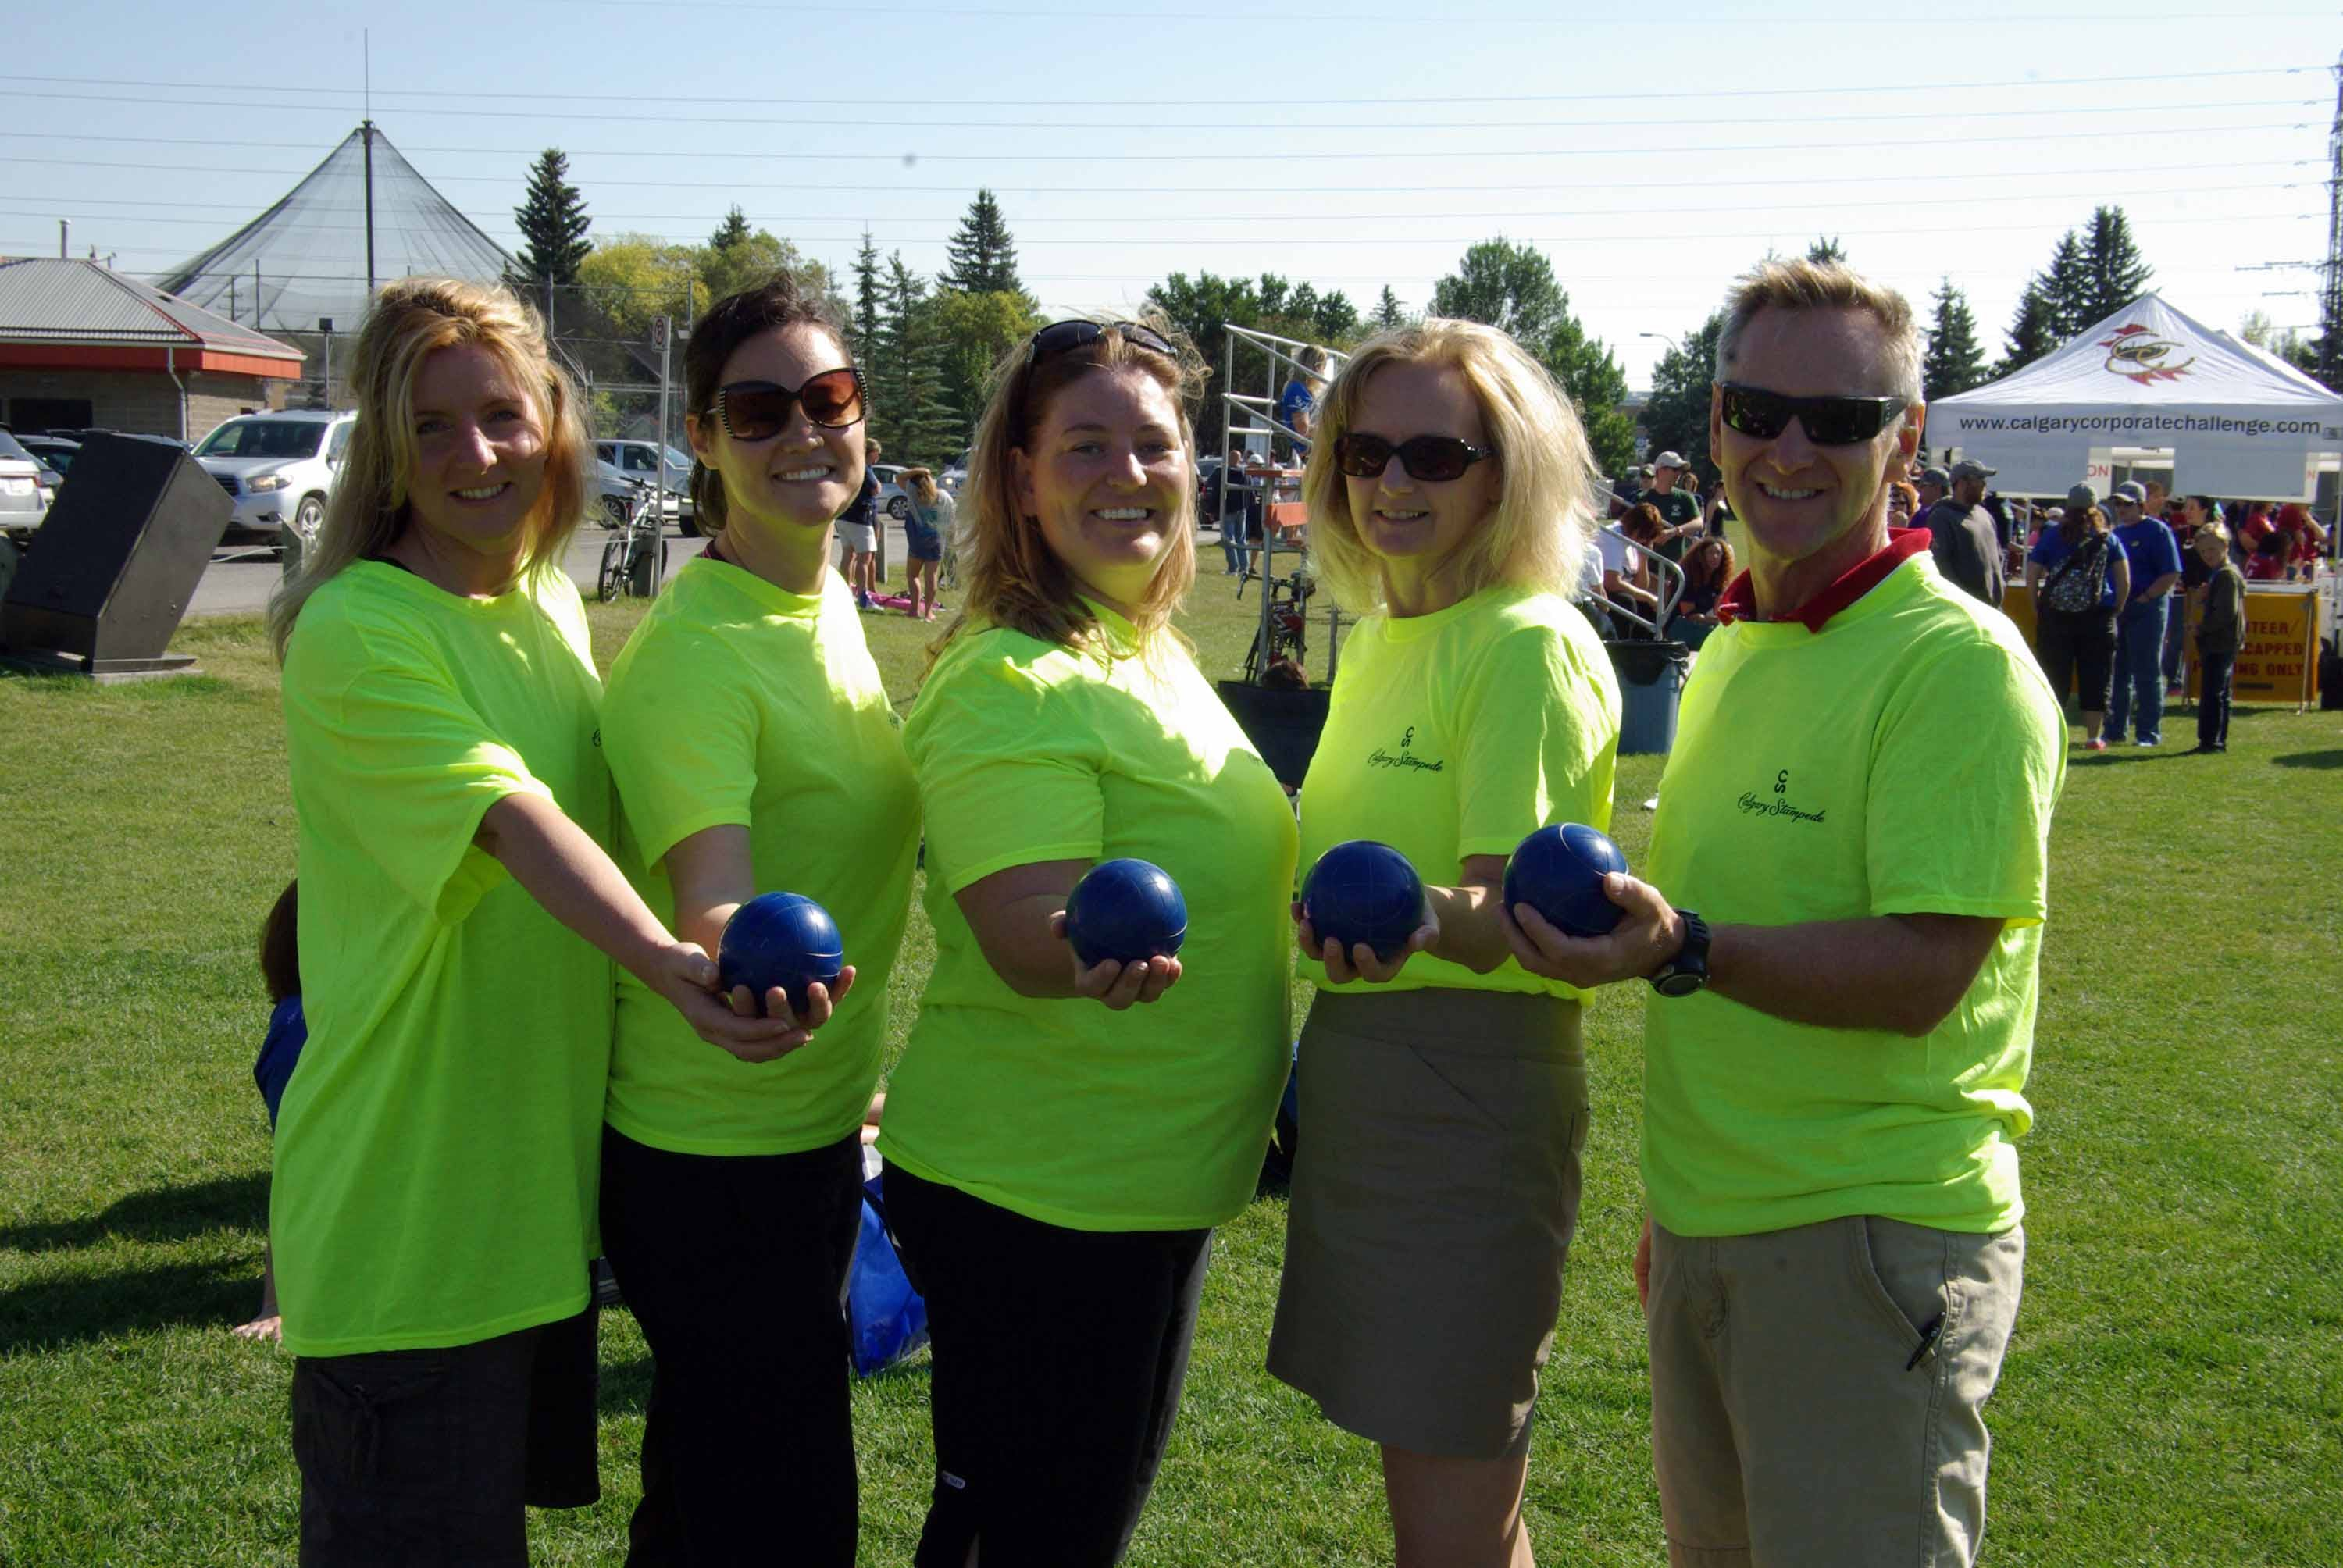 A group holding bocce balls